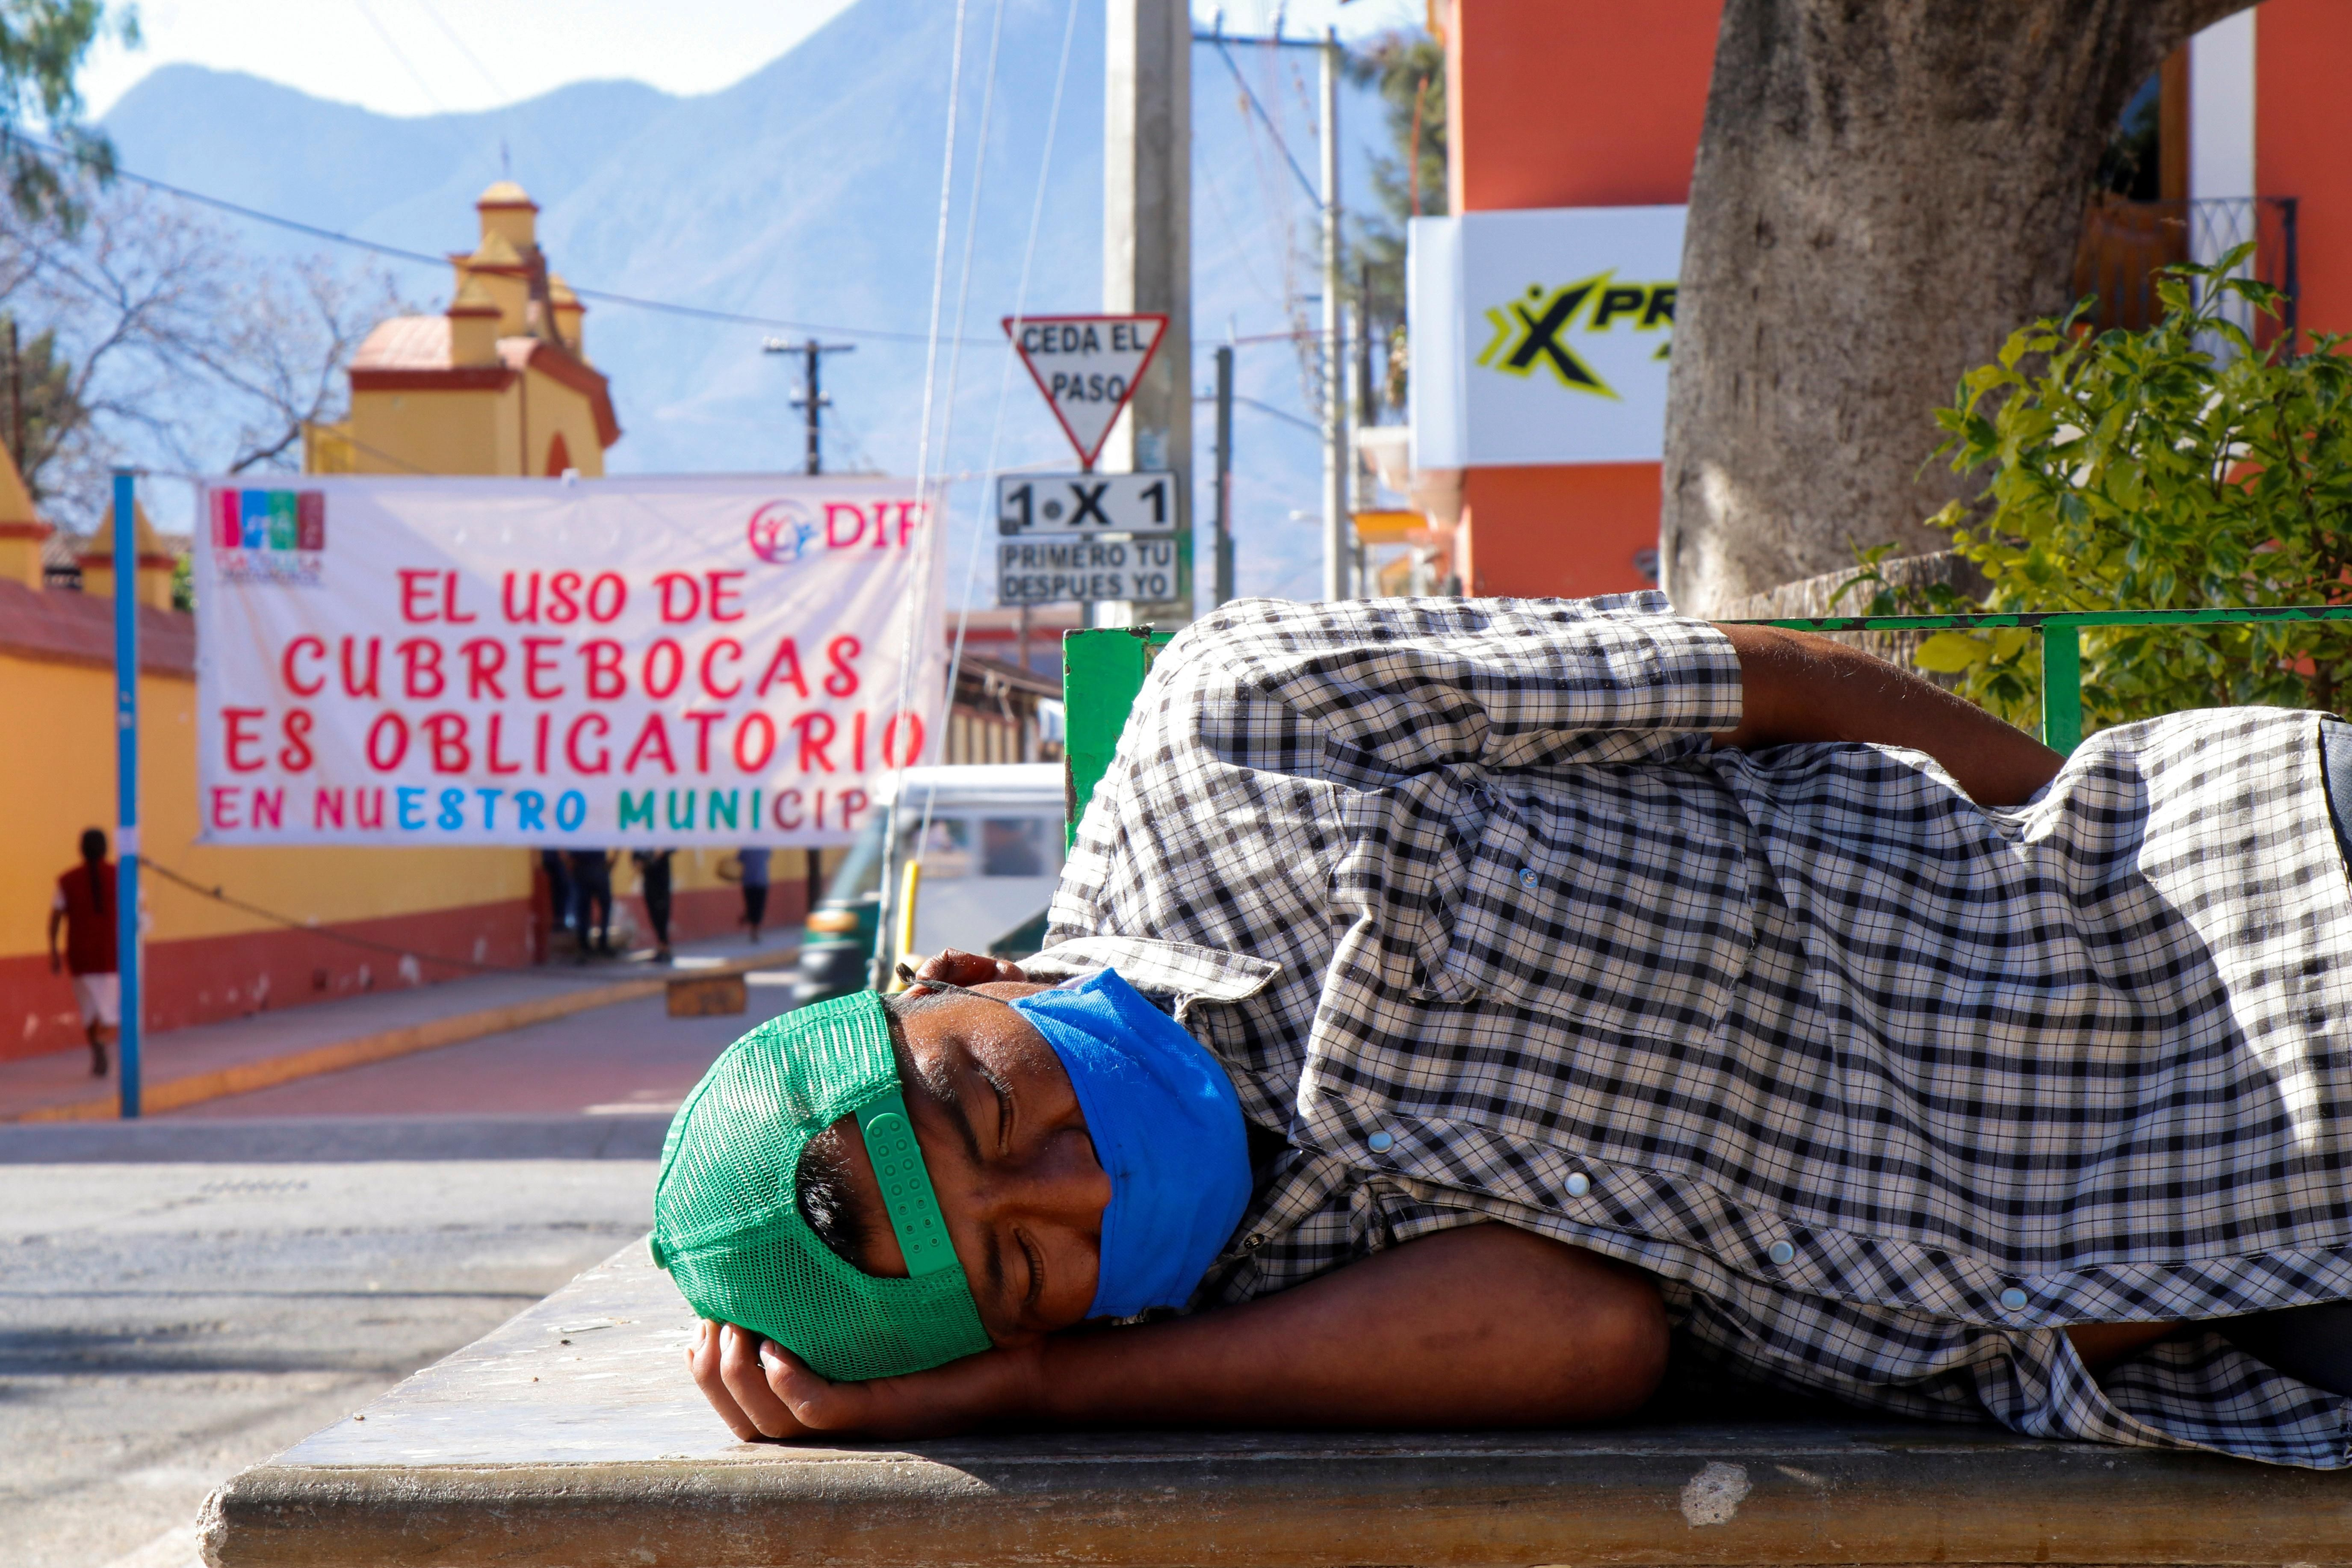 """A man wearing a face mask sleeps at a park near a banner reading """"The use of face masks is mandatory in our municipality"""", amid the coronavirus disease (COVID-19) pandemic, in Tlacolula de Matamoros, Oaxaca state, Mexico January 30, 2021."""